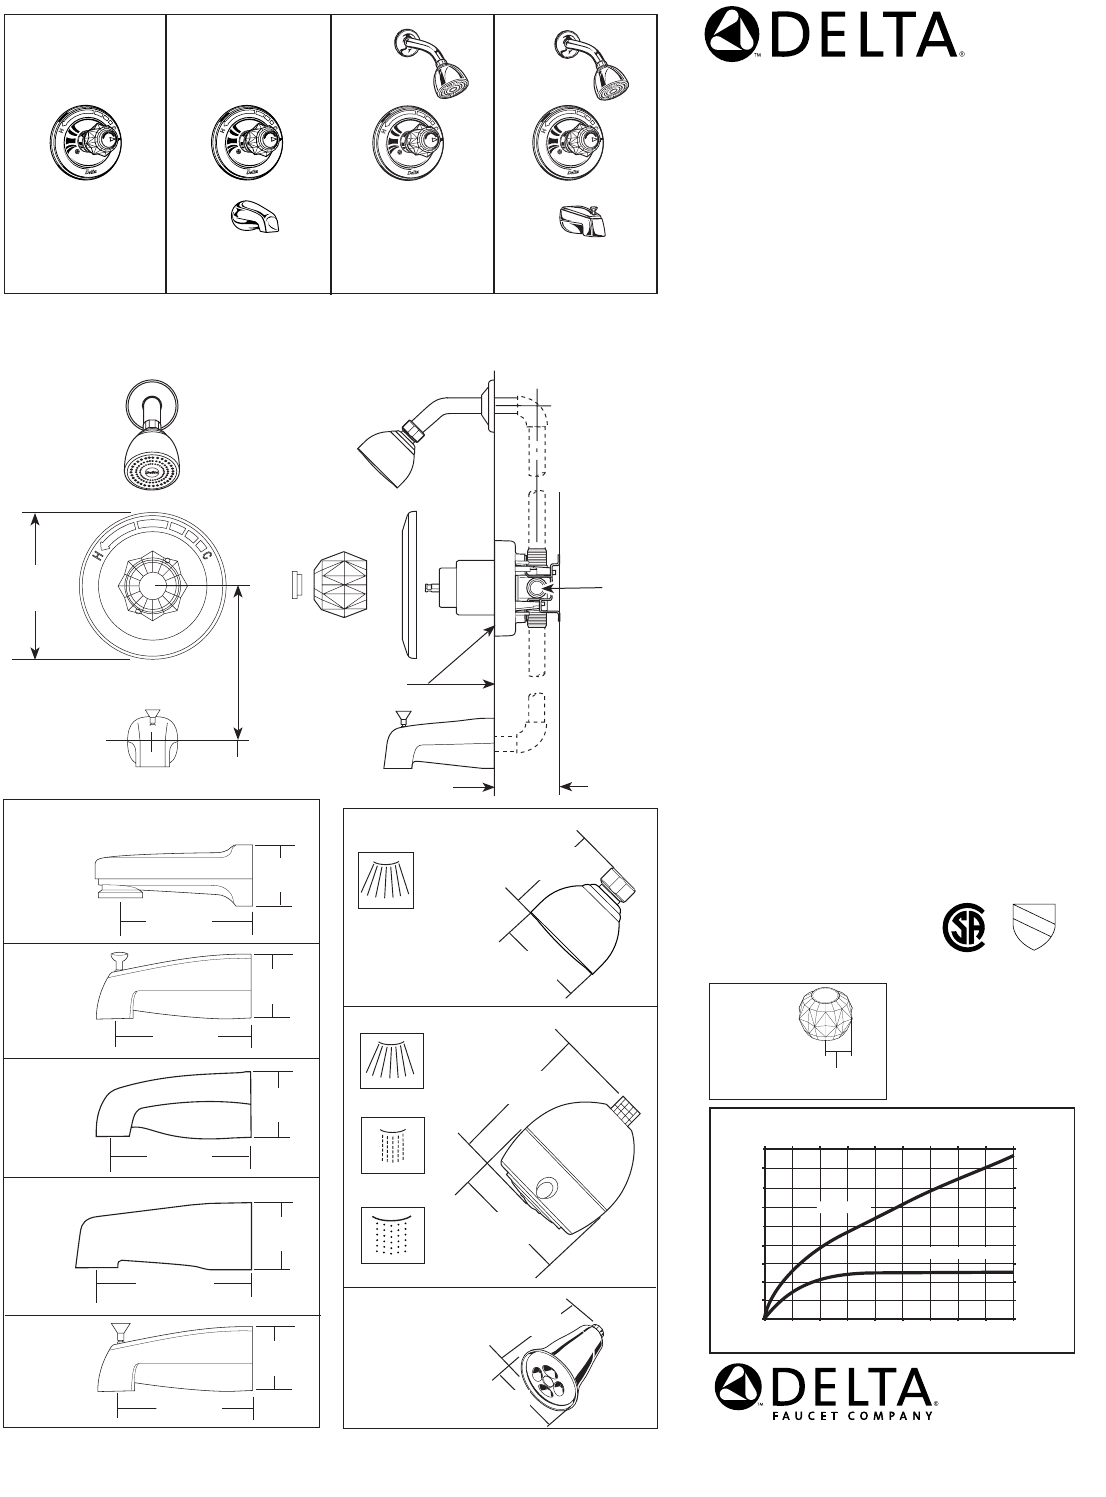 Diagram Of Delta T13022 Trusted Wiring Faucet 144910 Parts List And Ereplacementpartscom Plumbing Product User Guide Manualsonline Com Velcro